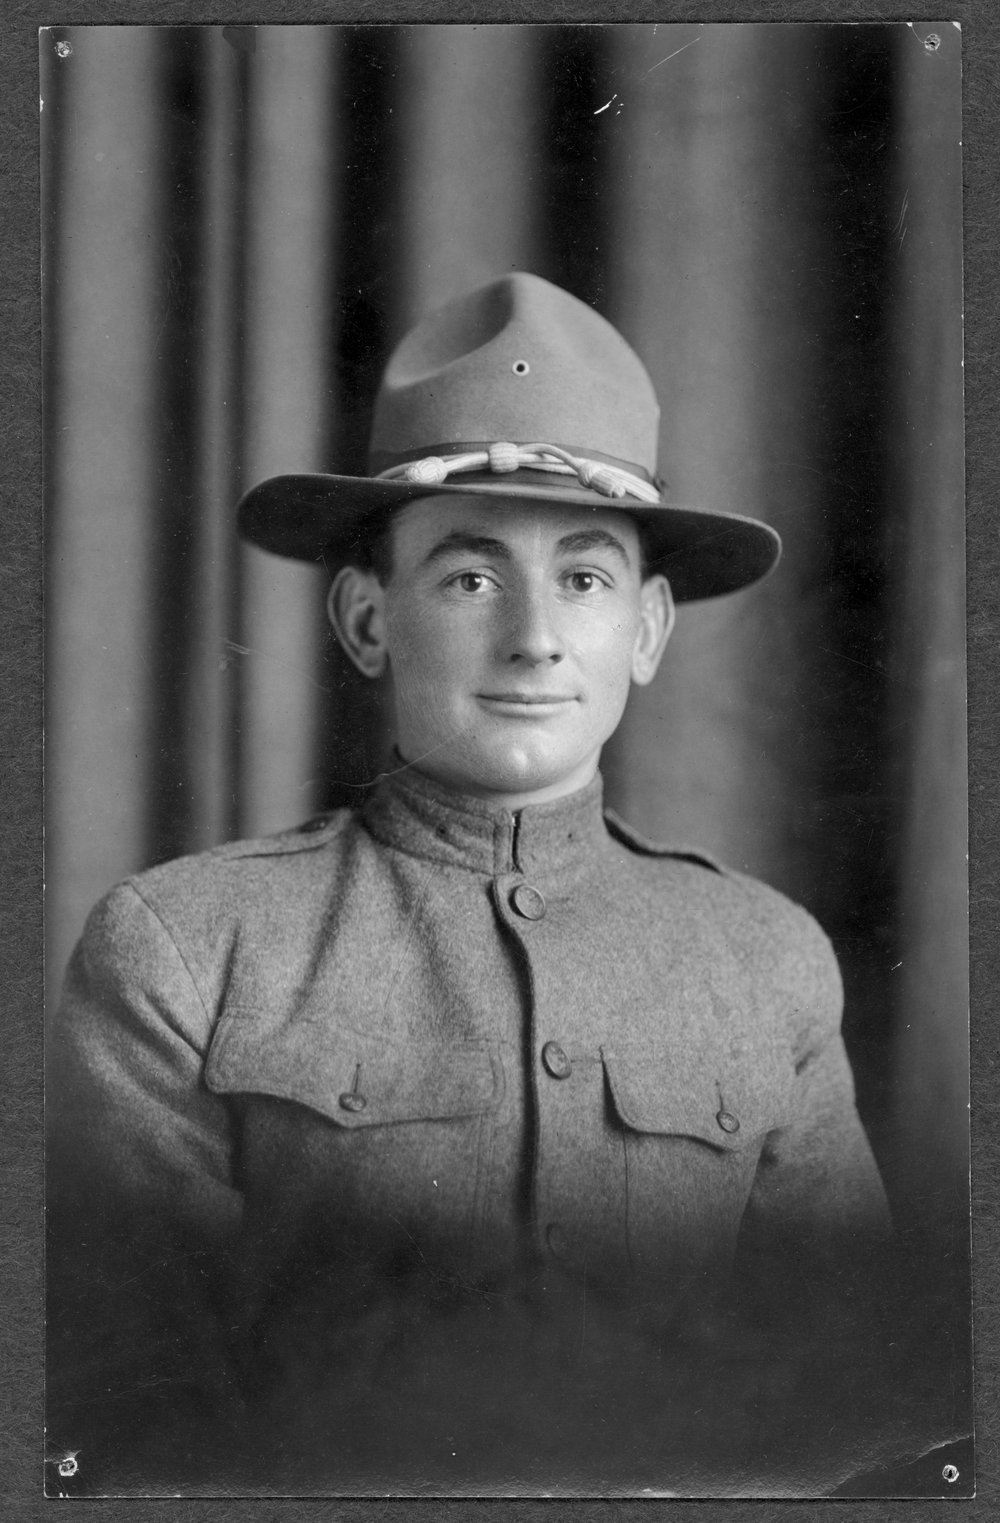 Joseph Martin Gress, World War I soldier - 1